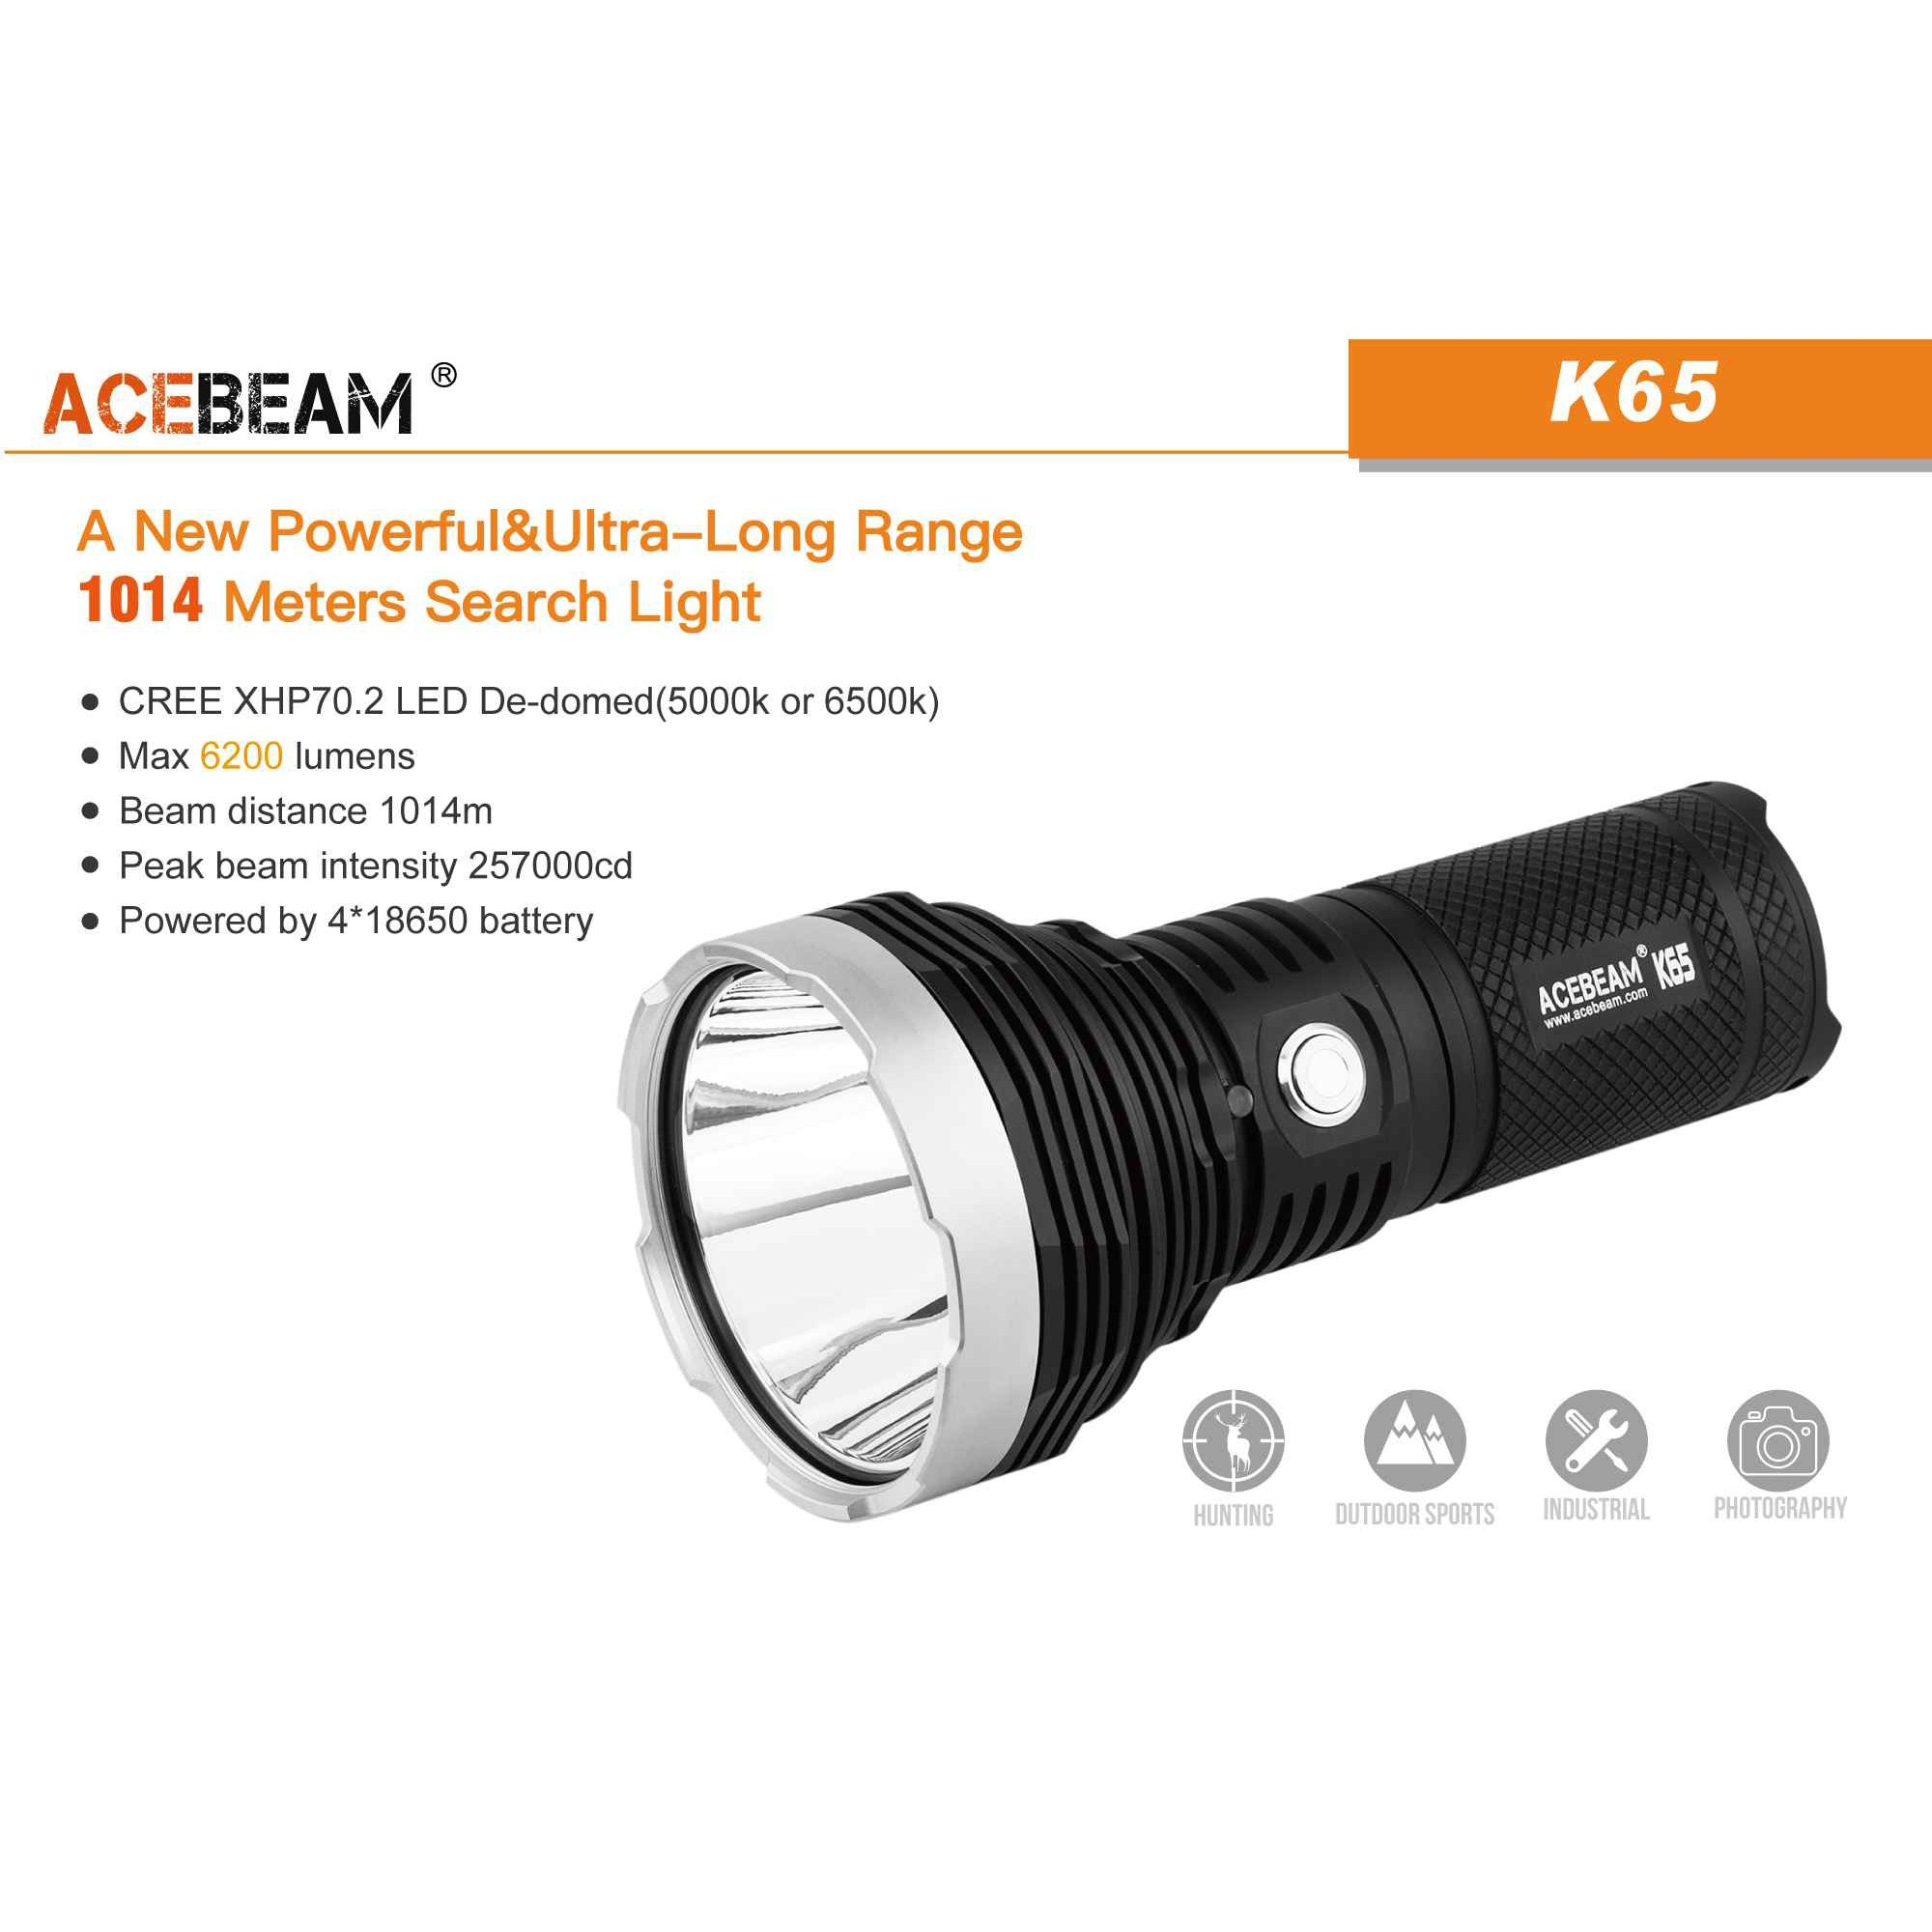 ACEBEAM K65 Flashlight CREE XHP70.2 De-Domed LED Searchlight with Max 6300 lumens Throw 1014M(6500K) by ACEBEAM (Image #1)